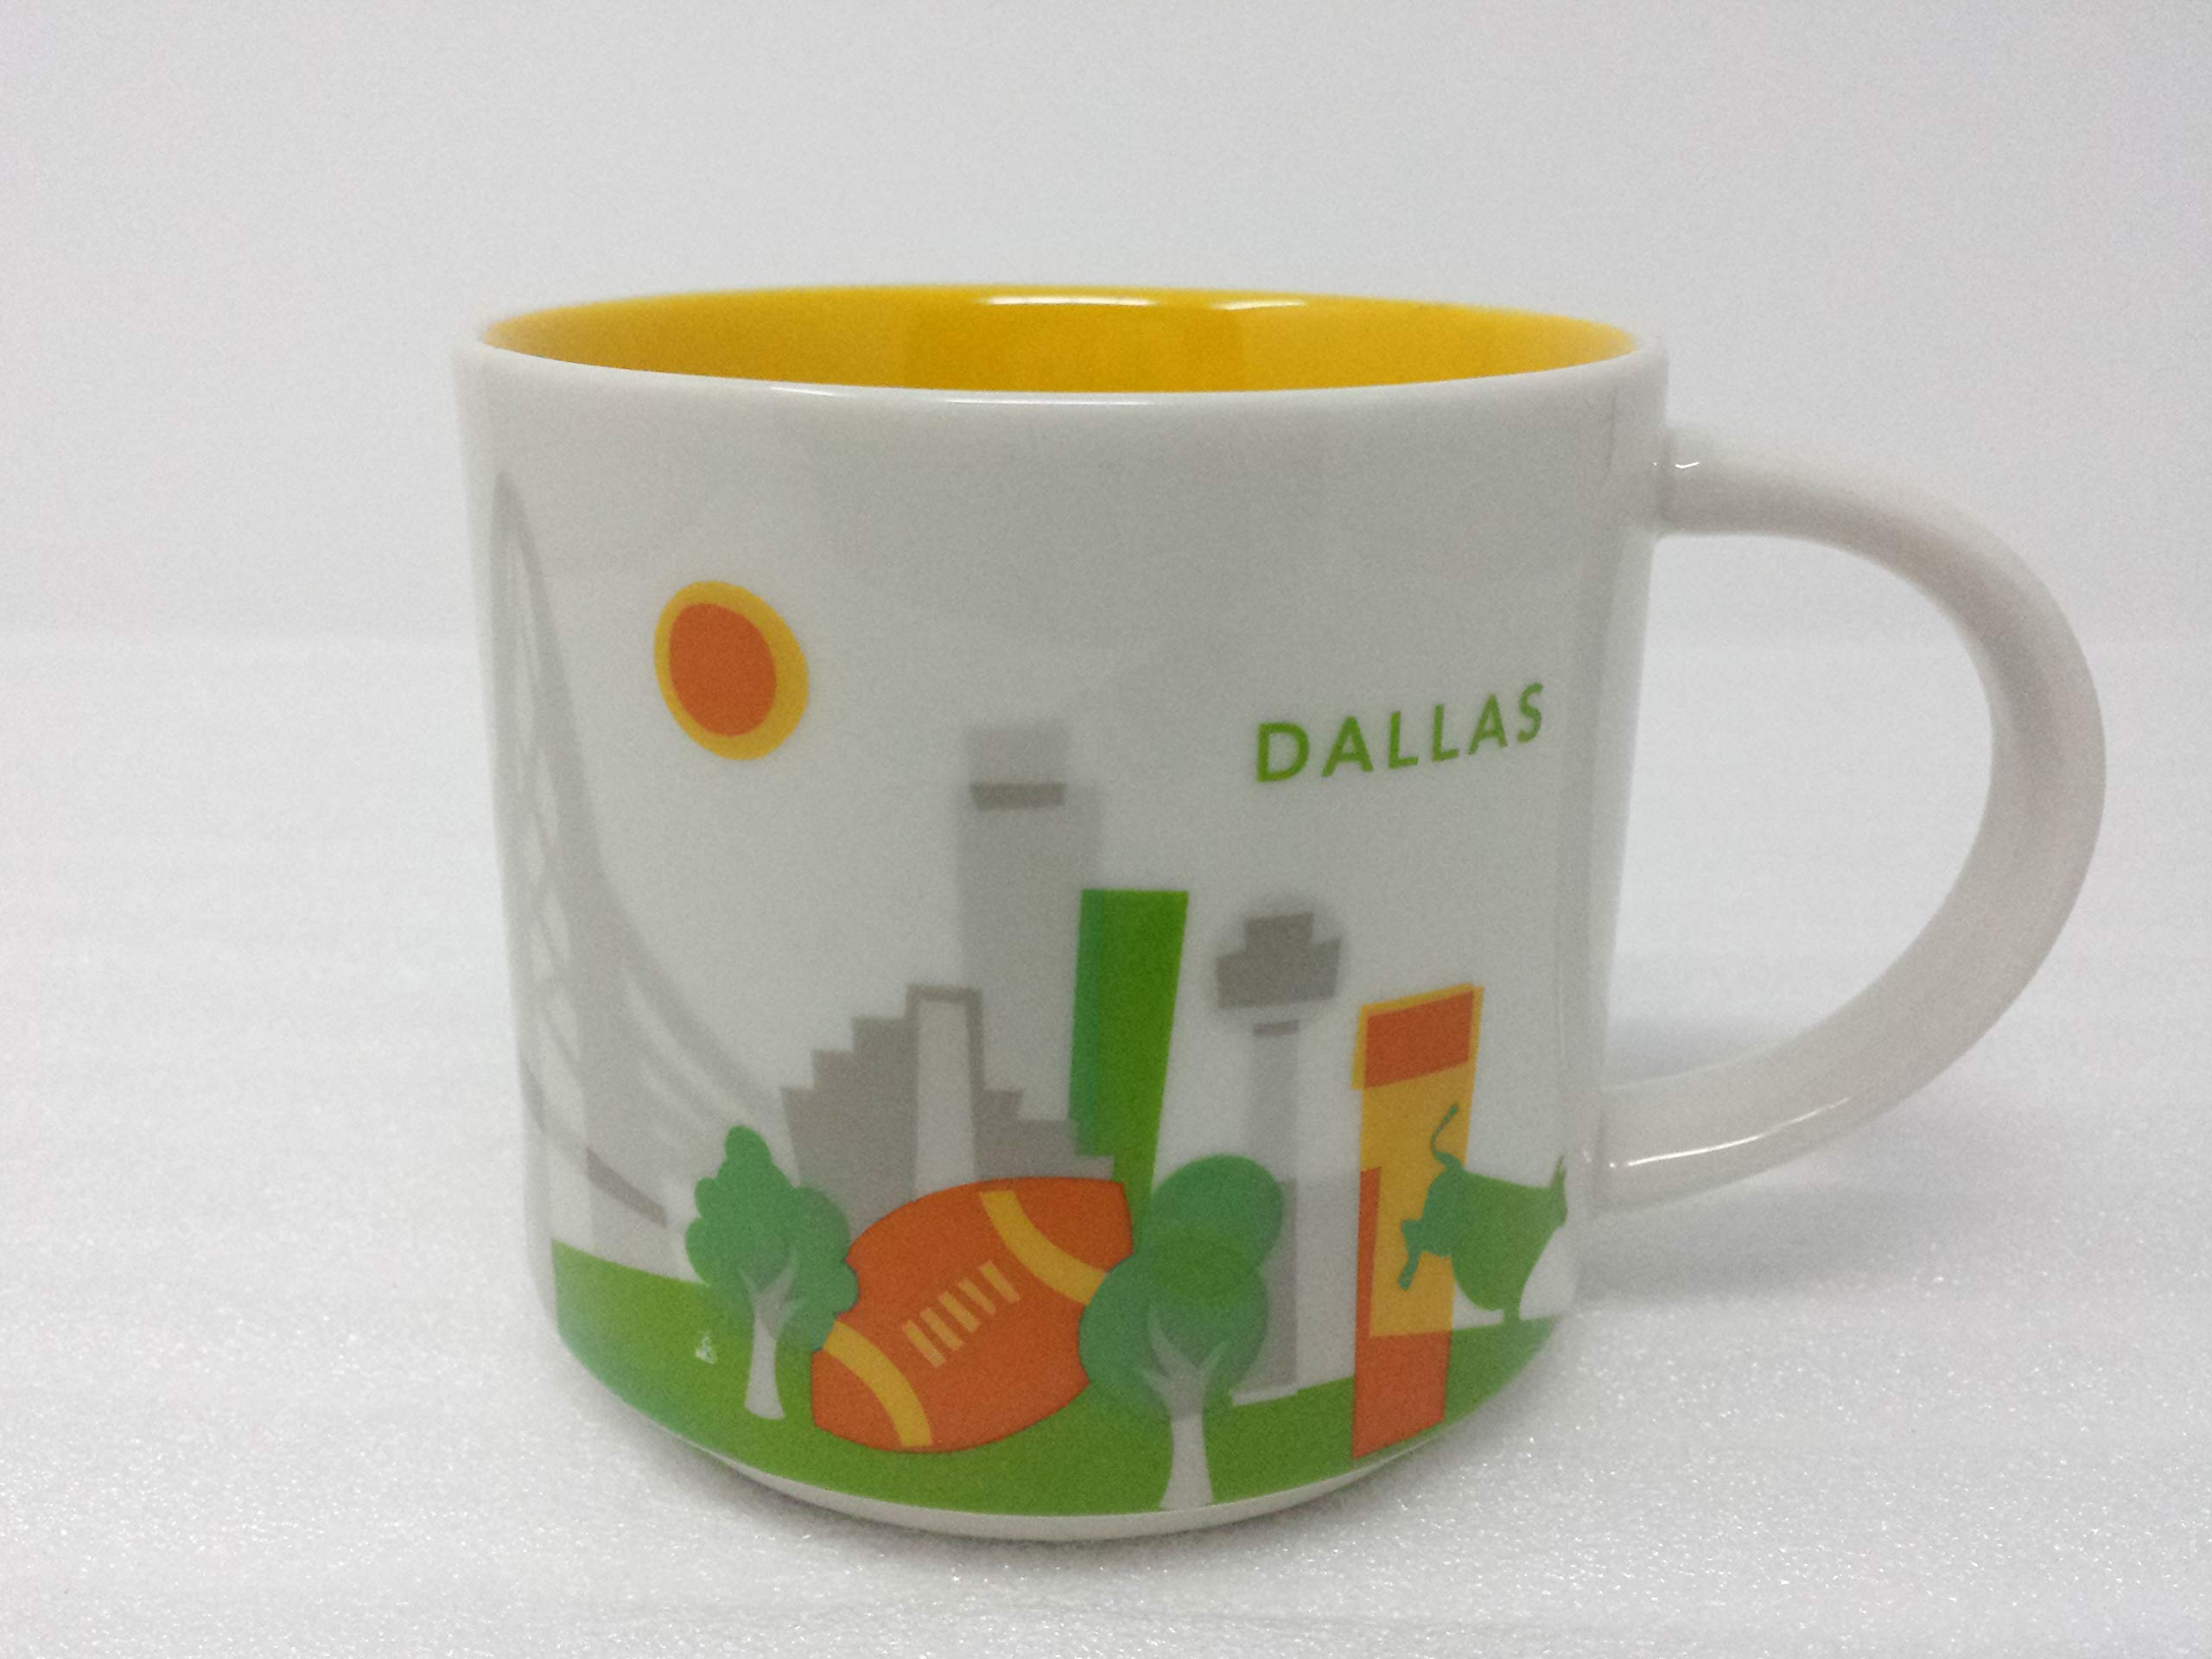 Starbucks You Are Here Collection 14 oz Coffee Mug Dallas